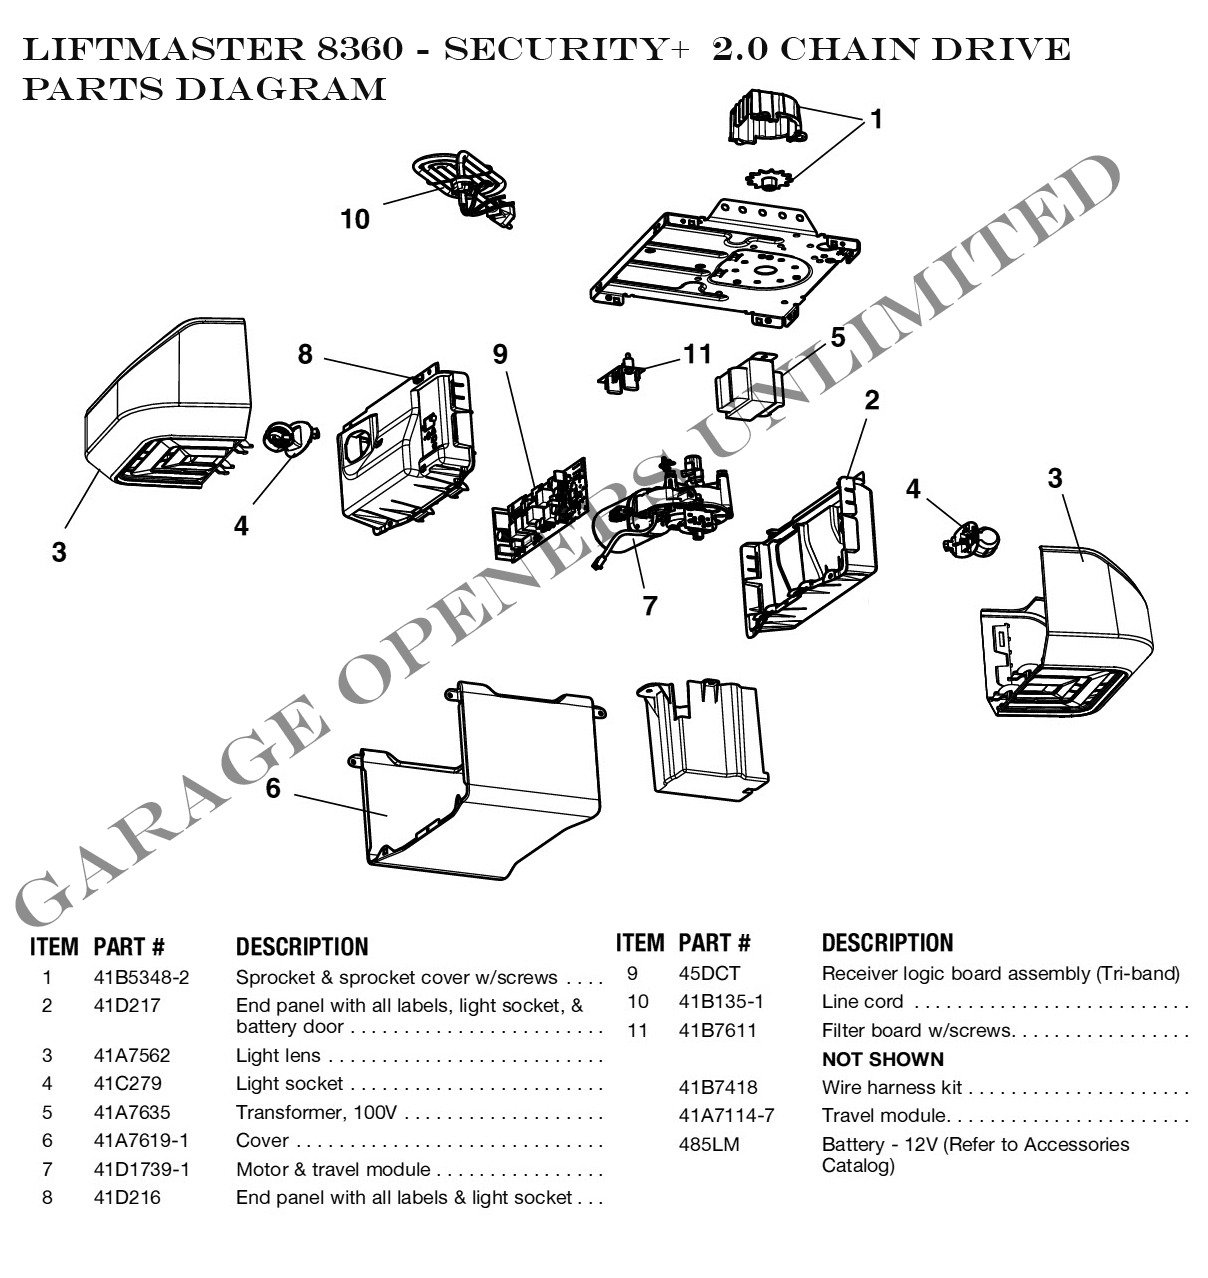 Craftsman Garage Door Opener Parts Of Cool Sears Manual Springs with regard to Craftsman Garage Door Opener Parts Diagram